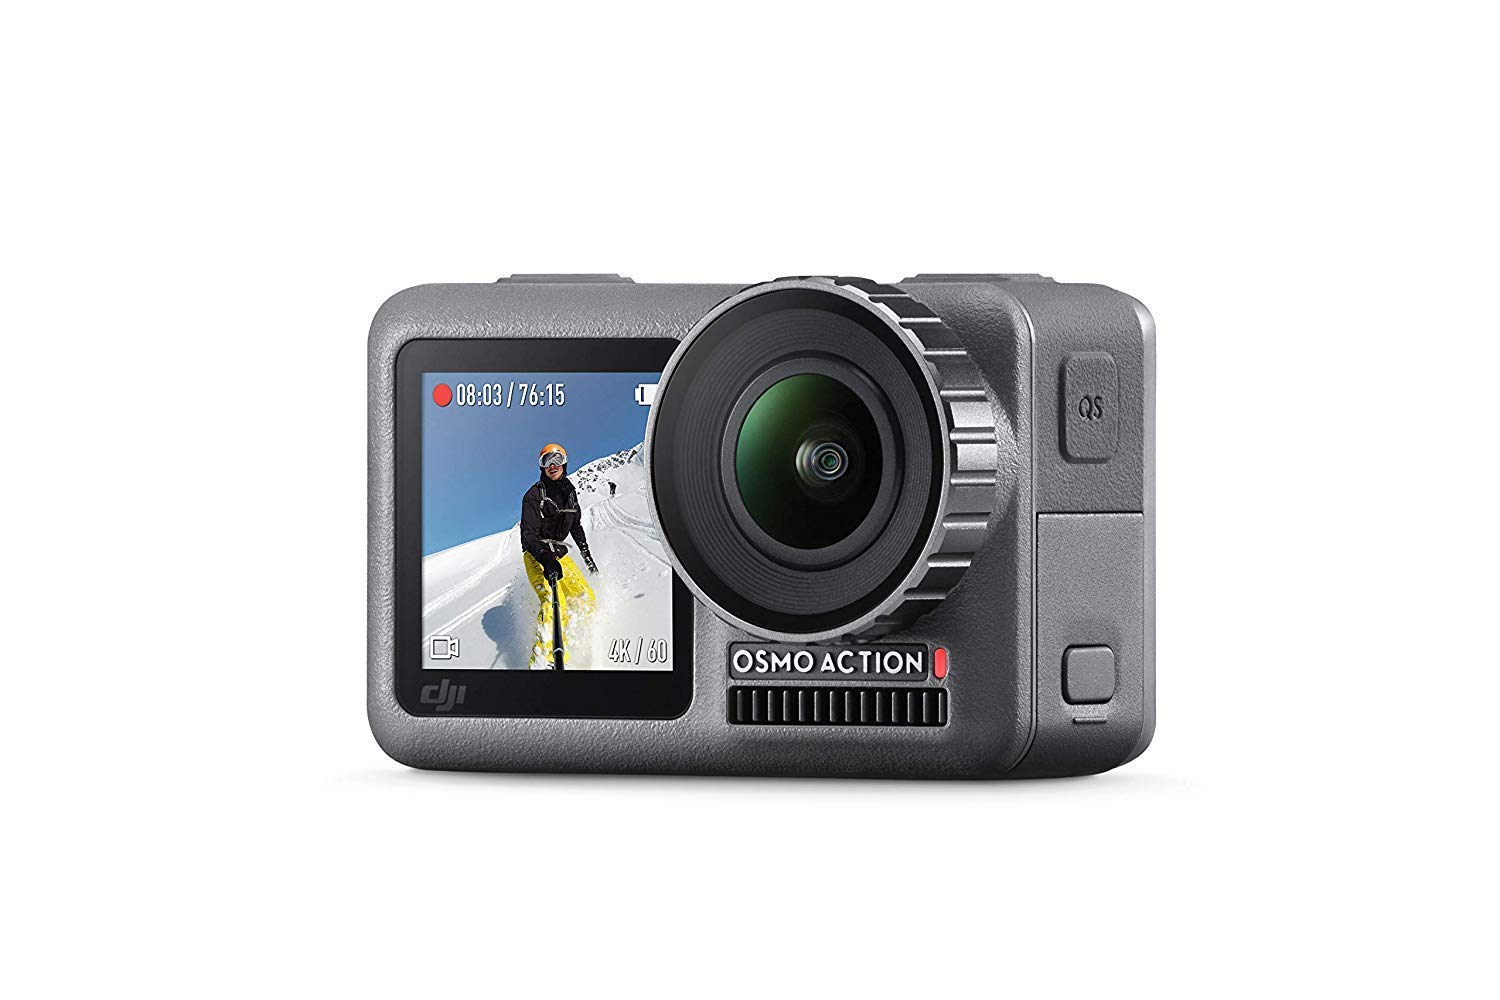 dji-osmo-action-cam-digital-camera-with-2-displays-36ft11m-waterproof-4k-hdr-video-12mp-145-angle-black